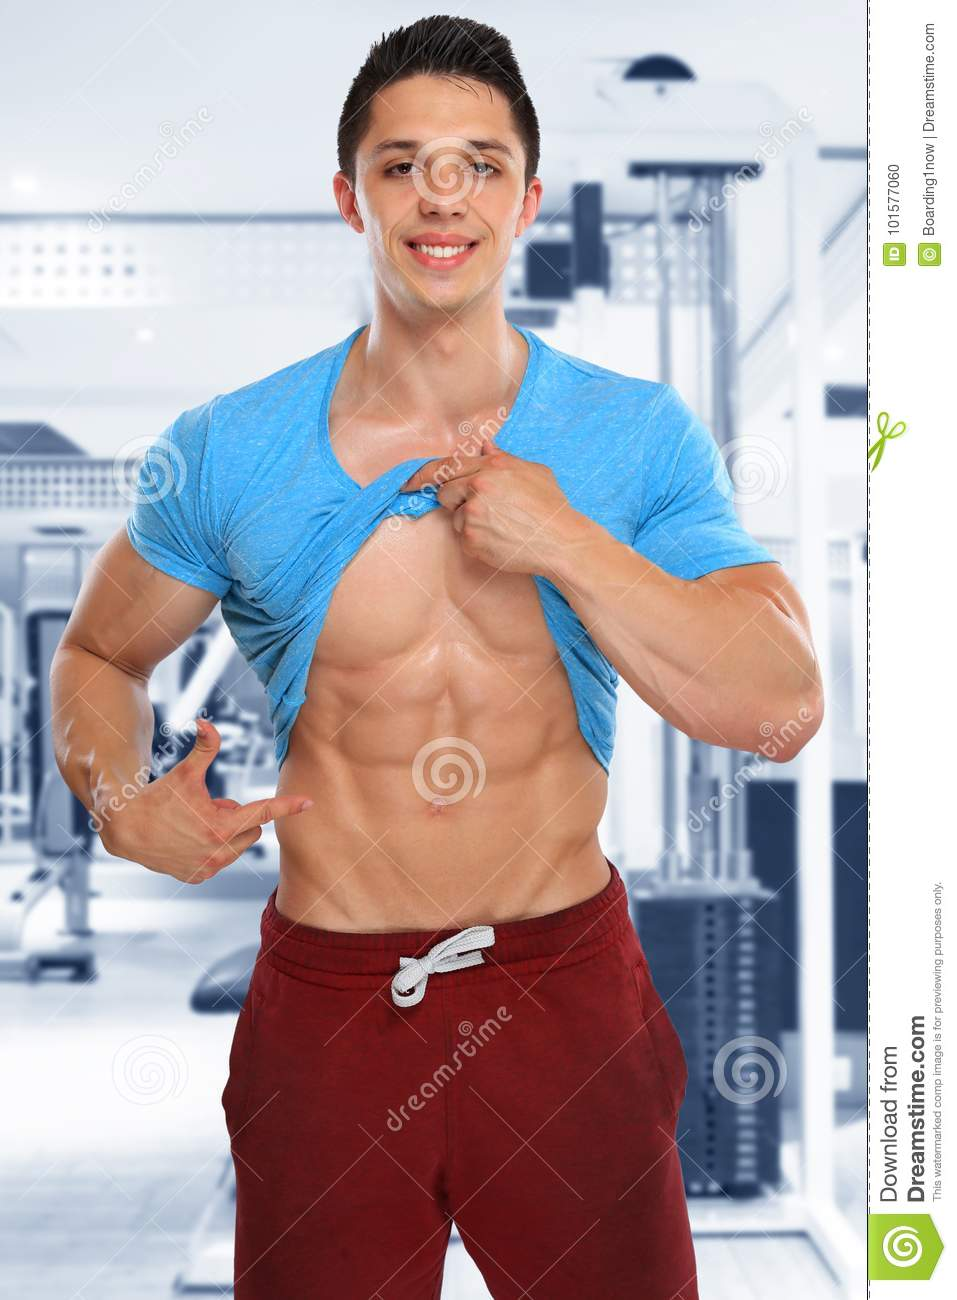 Abs Abdominal Six Pack Muscles Bodybuilder Bodybuilding Gym Flex Stock Photo Image Of Abdominal Studio 101577060